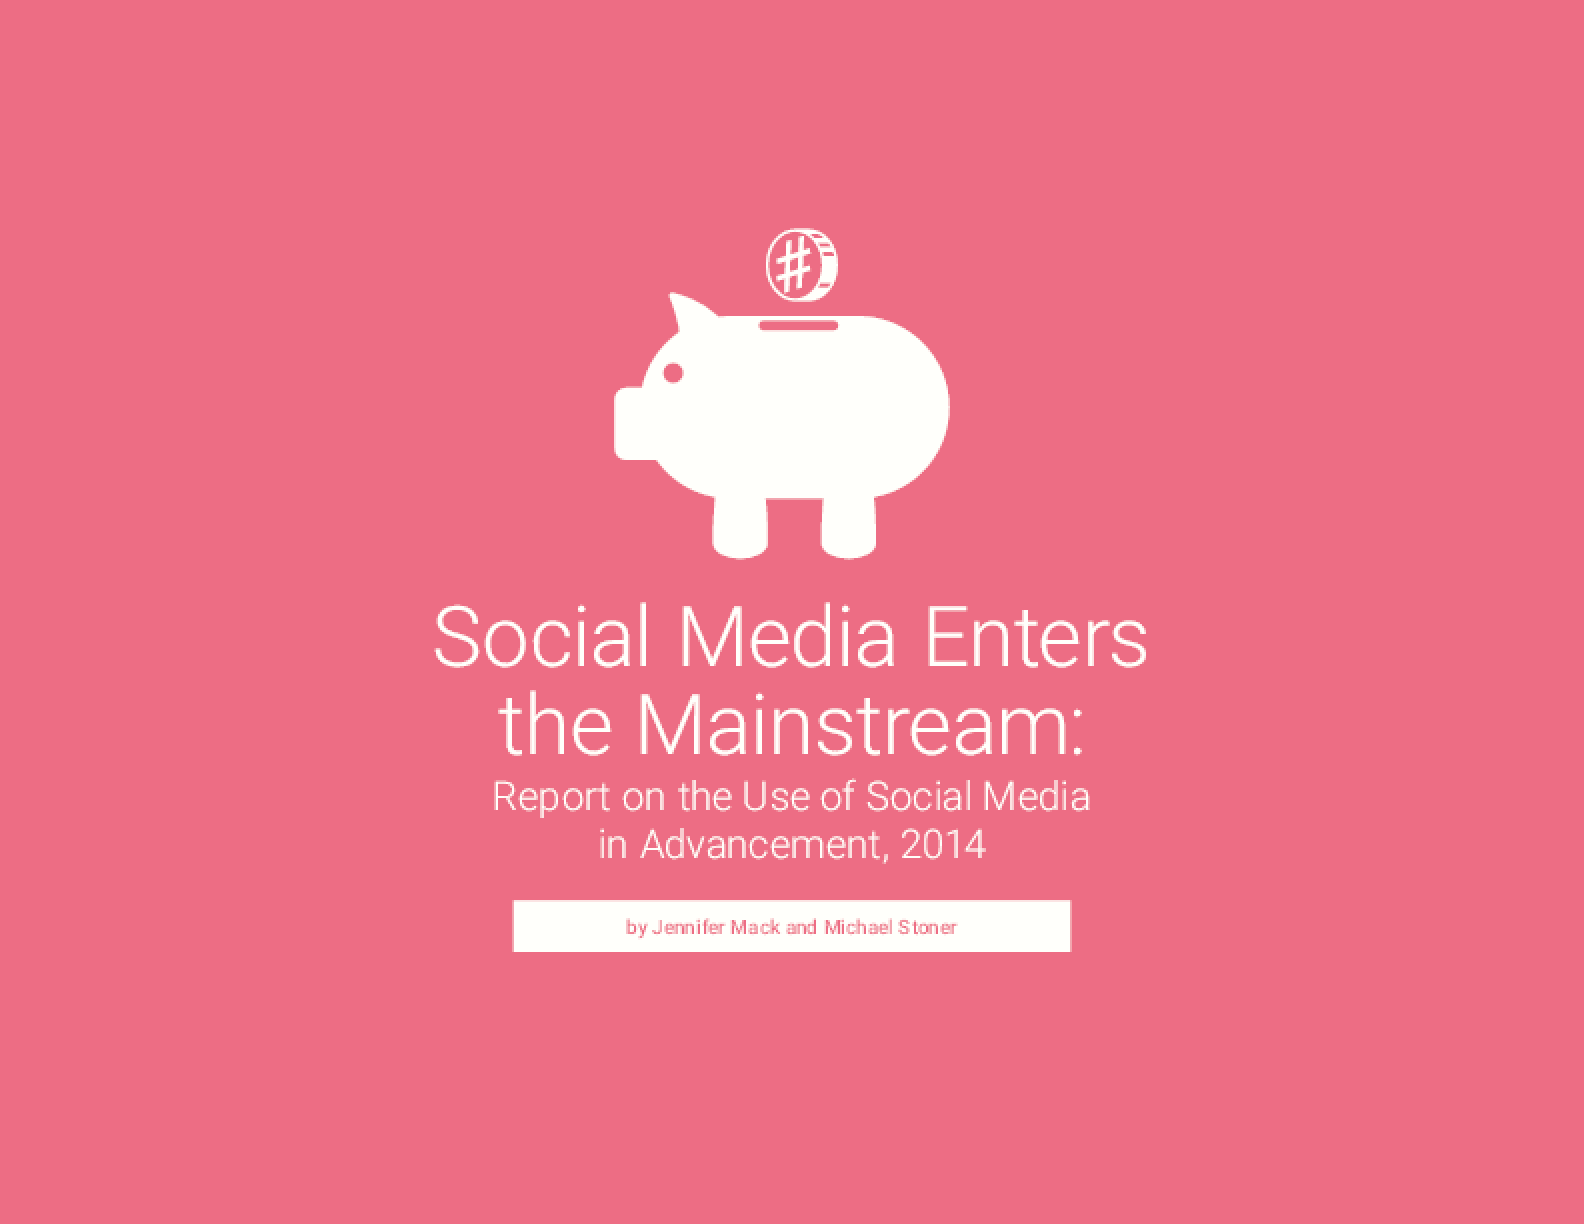 Social Media Enters the Mainstream: Report on the Use of Social Media in Advancement, 2014